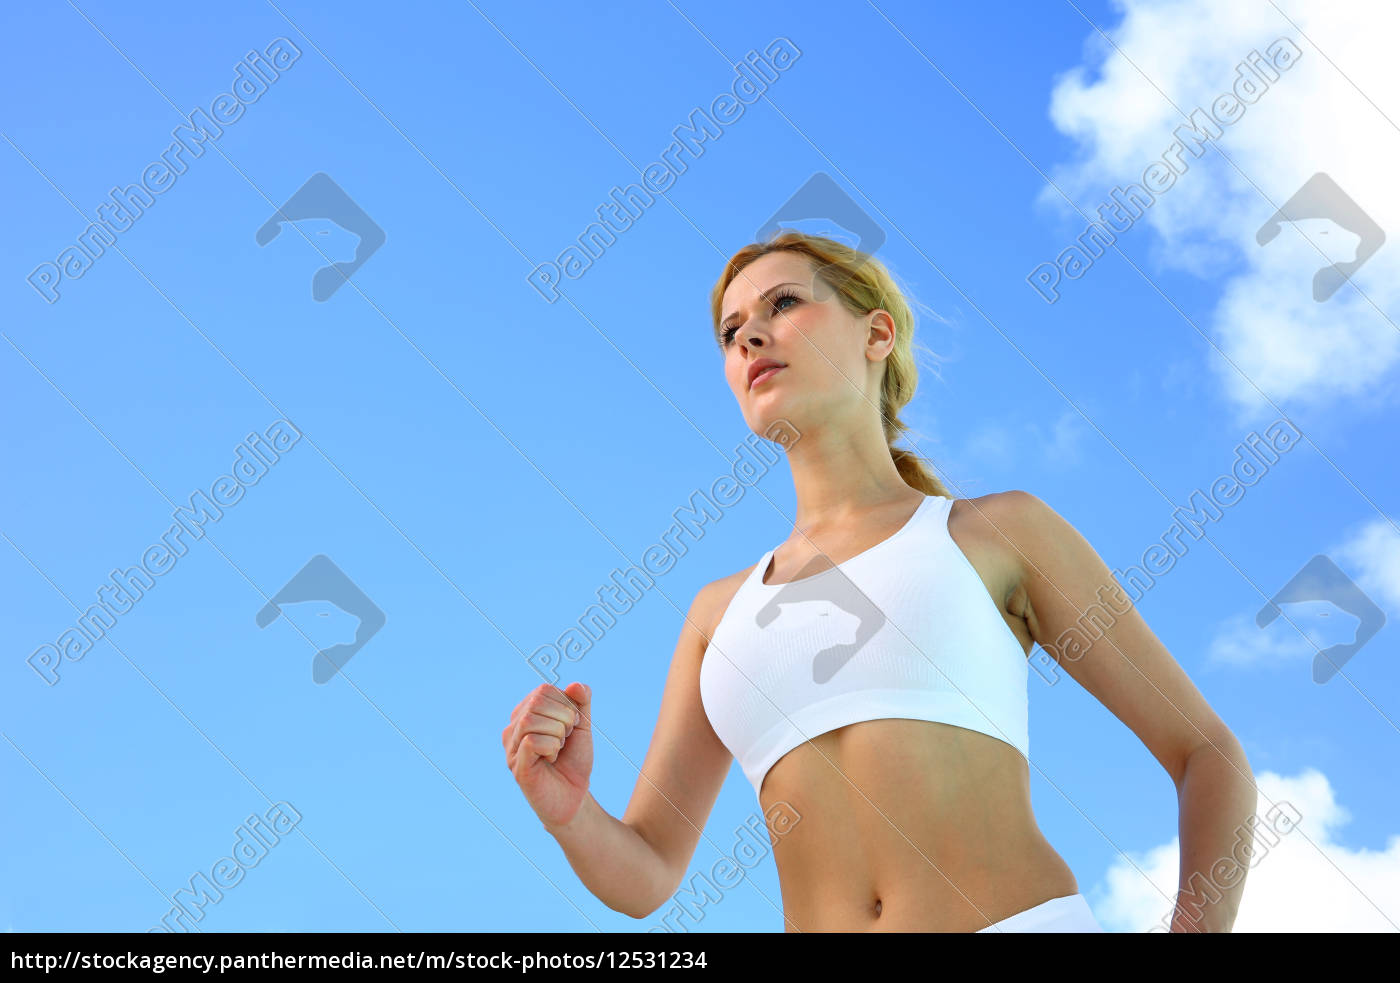 blond, woman, jogging, outside, on, a - 12531234